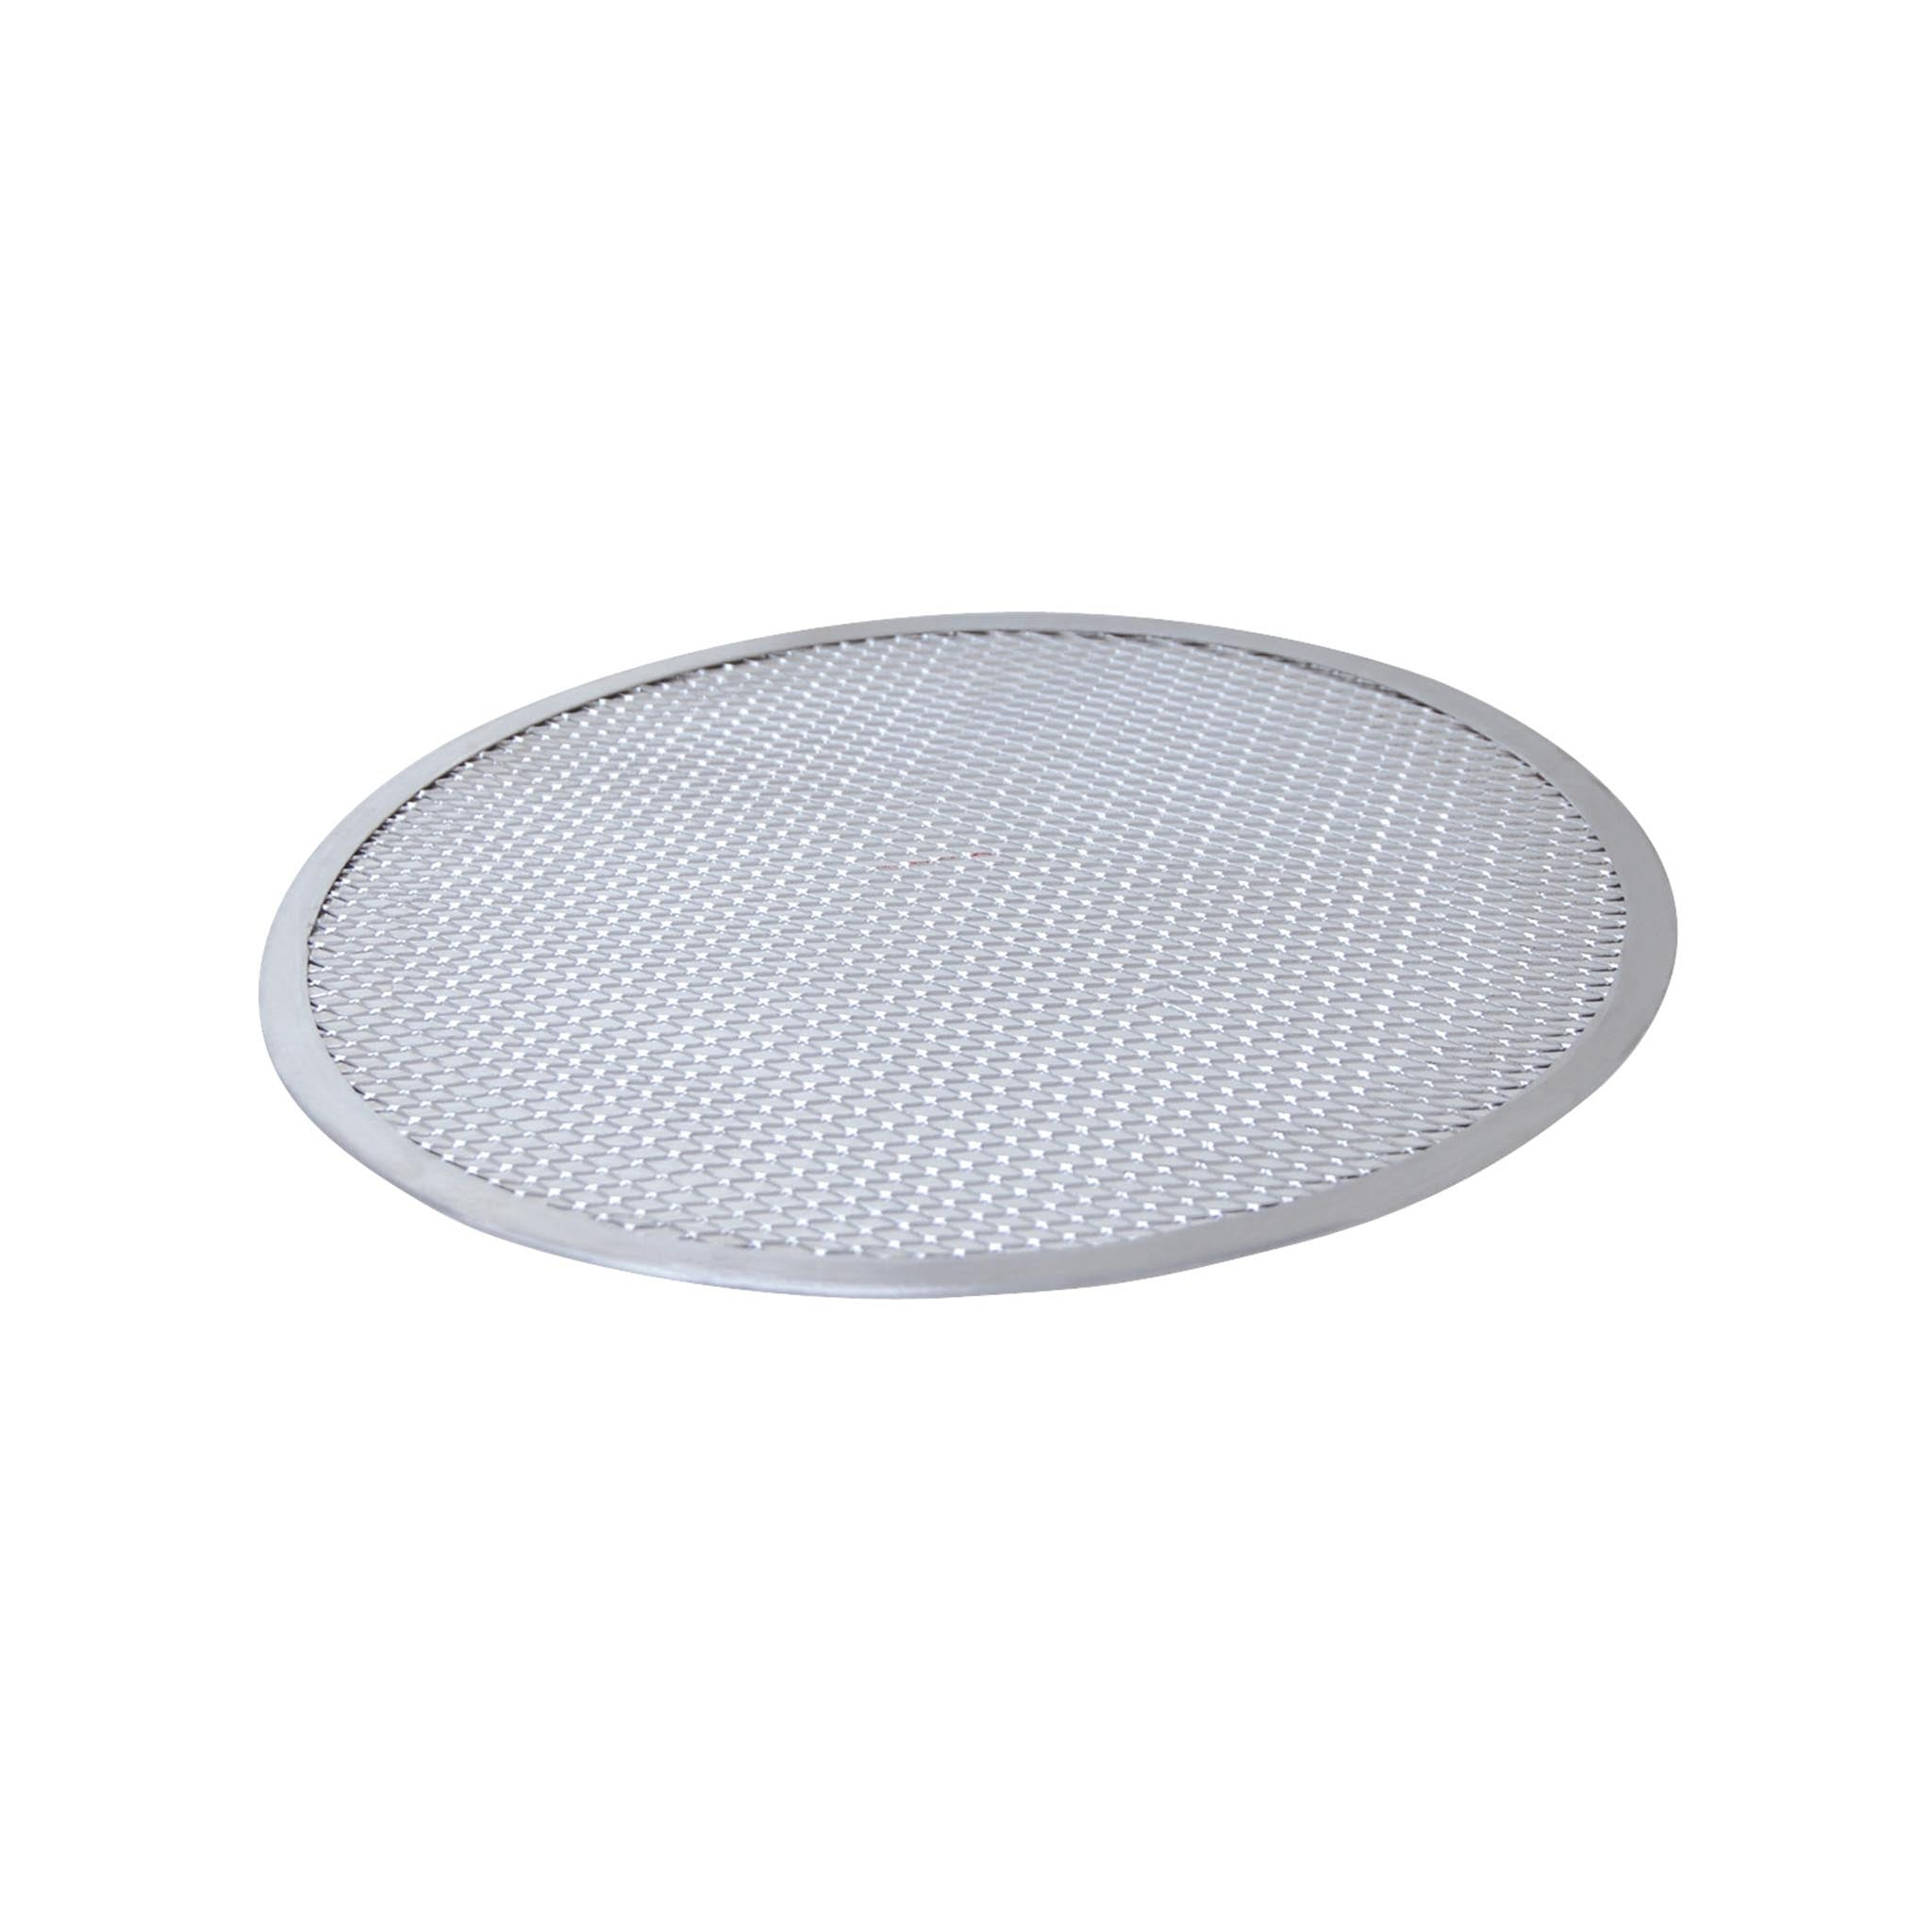 De Buyer Aluminium Pizza Tray Cookware Bakeware & Roasting French Food